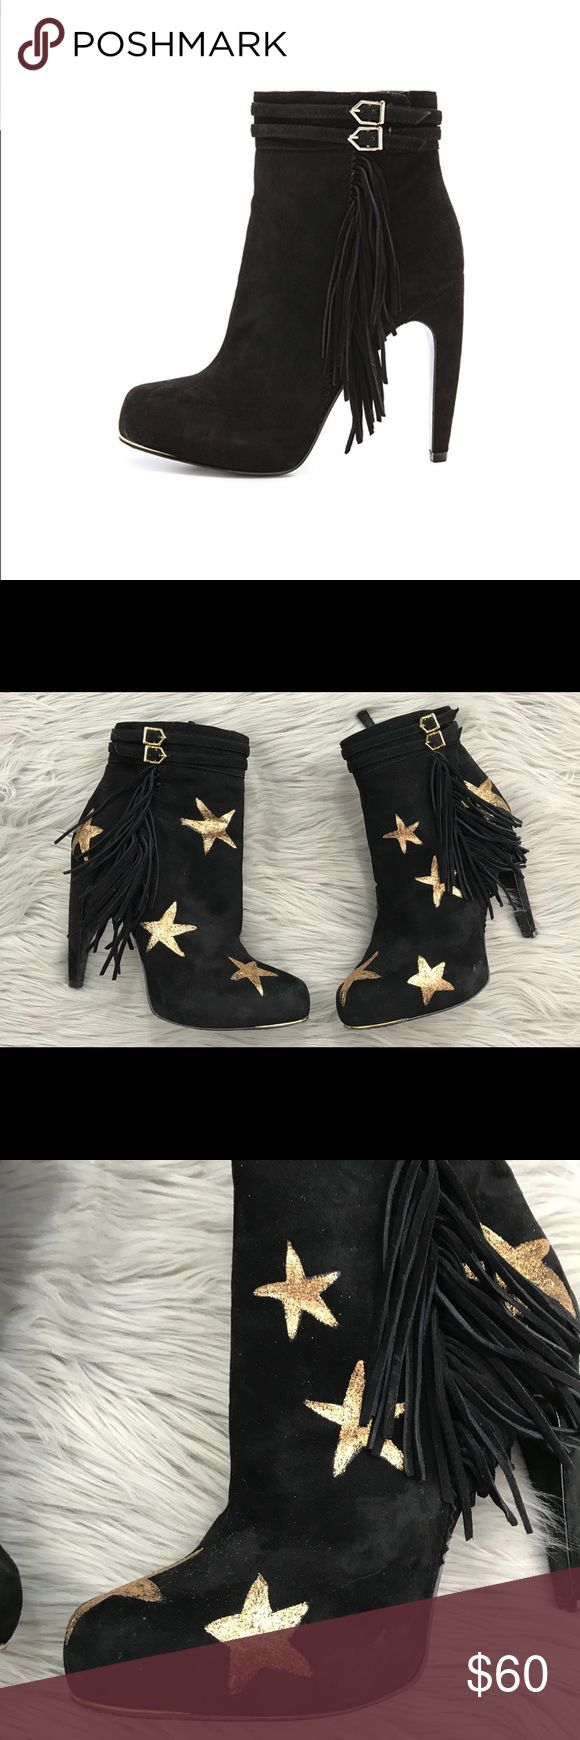 SAM EDELMAN KEEGAN BLACK SUEDE FRINGE BOOTS Custom Some signs of wear on the soles sand to the suede on the heels and toes, in good condition 7.5/10. The gold stars were hand painted on to customize the booties. A sculpted heel brings a defined edge to these velvety suede Sam Edelman booties. A trail of soft fringe and buckled straps detail the shaft, and sleek metal traces the rounded toe. Hidden side zip. Shiny leather sole. MEASUREMENTS Heel: 4.25in / 110mm Platform: 1in / 25mm Shaft…